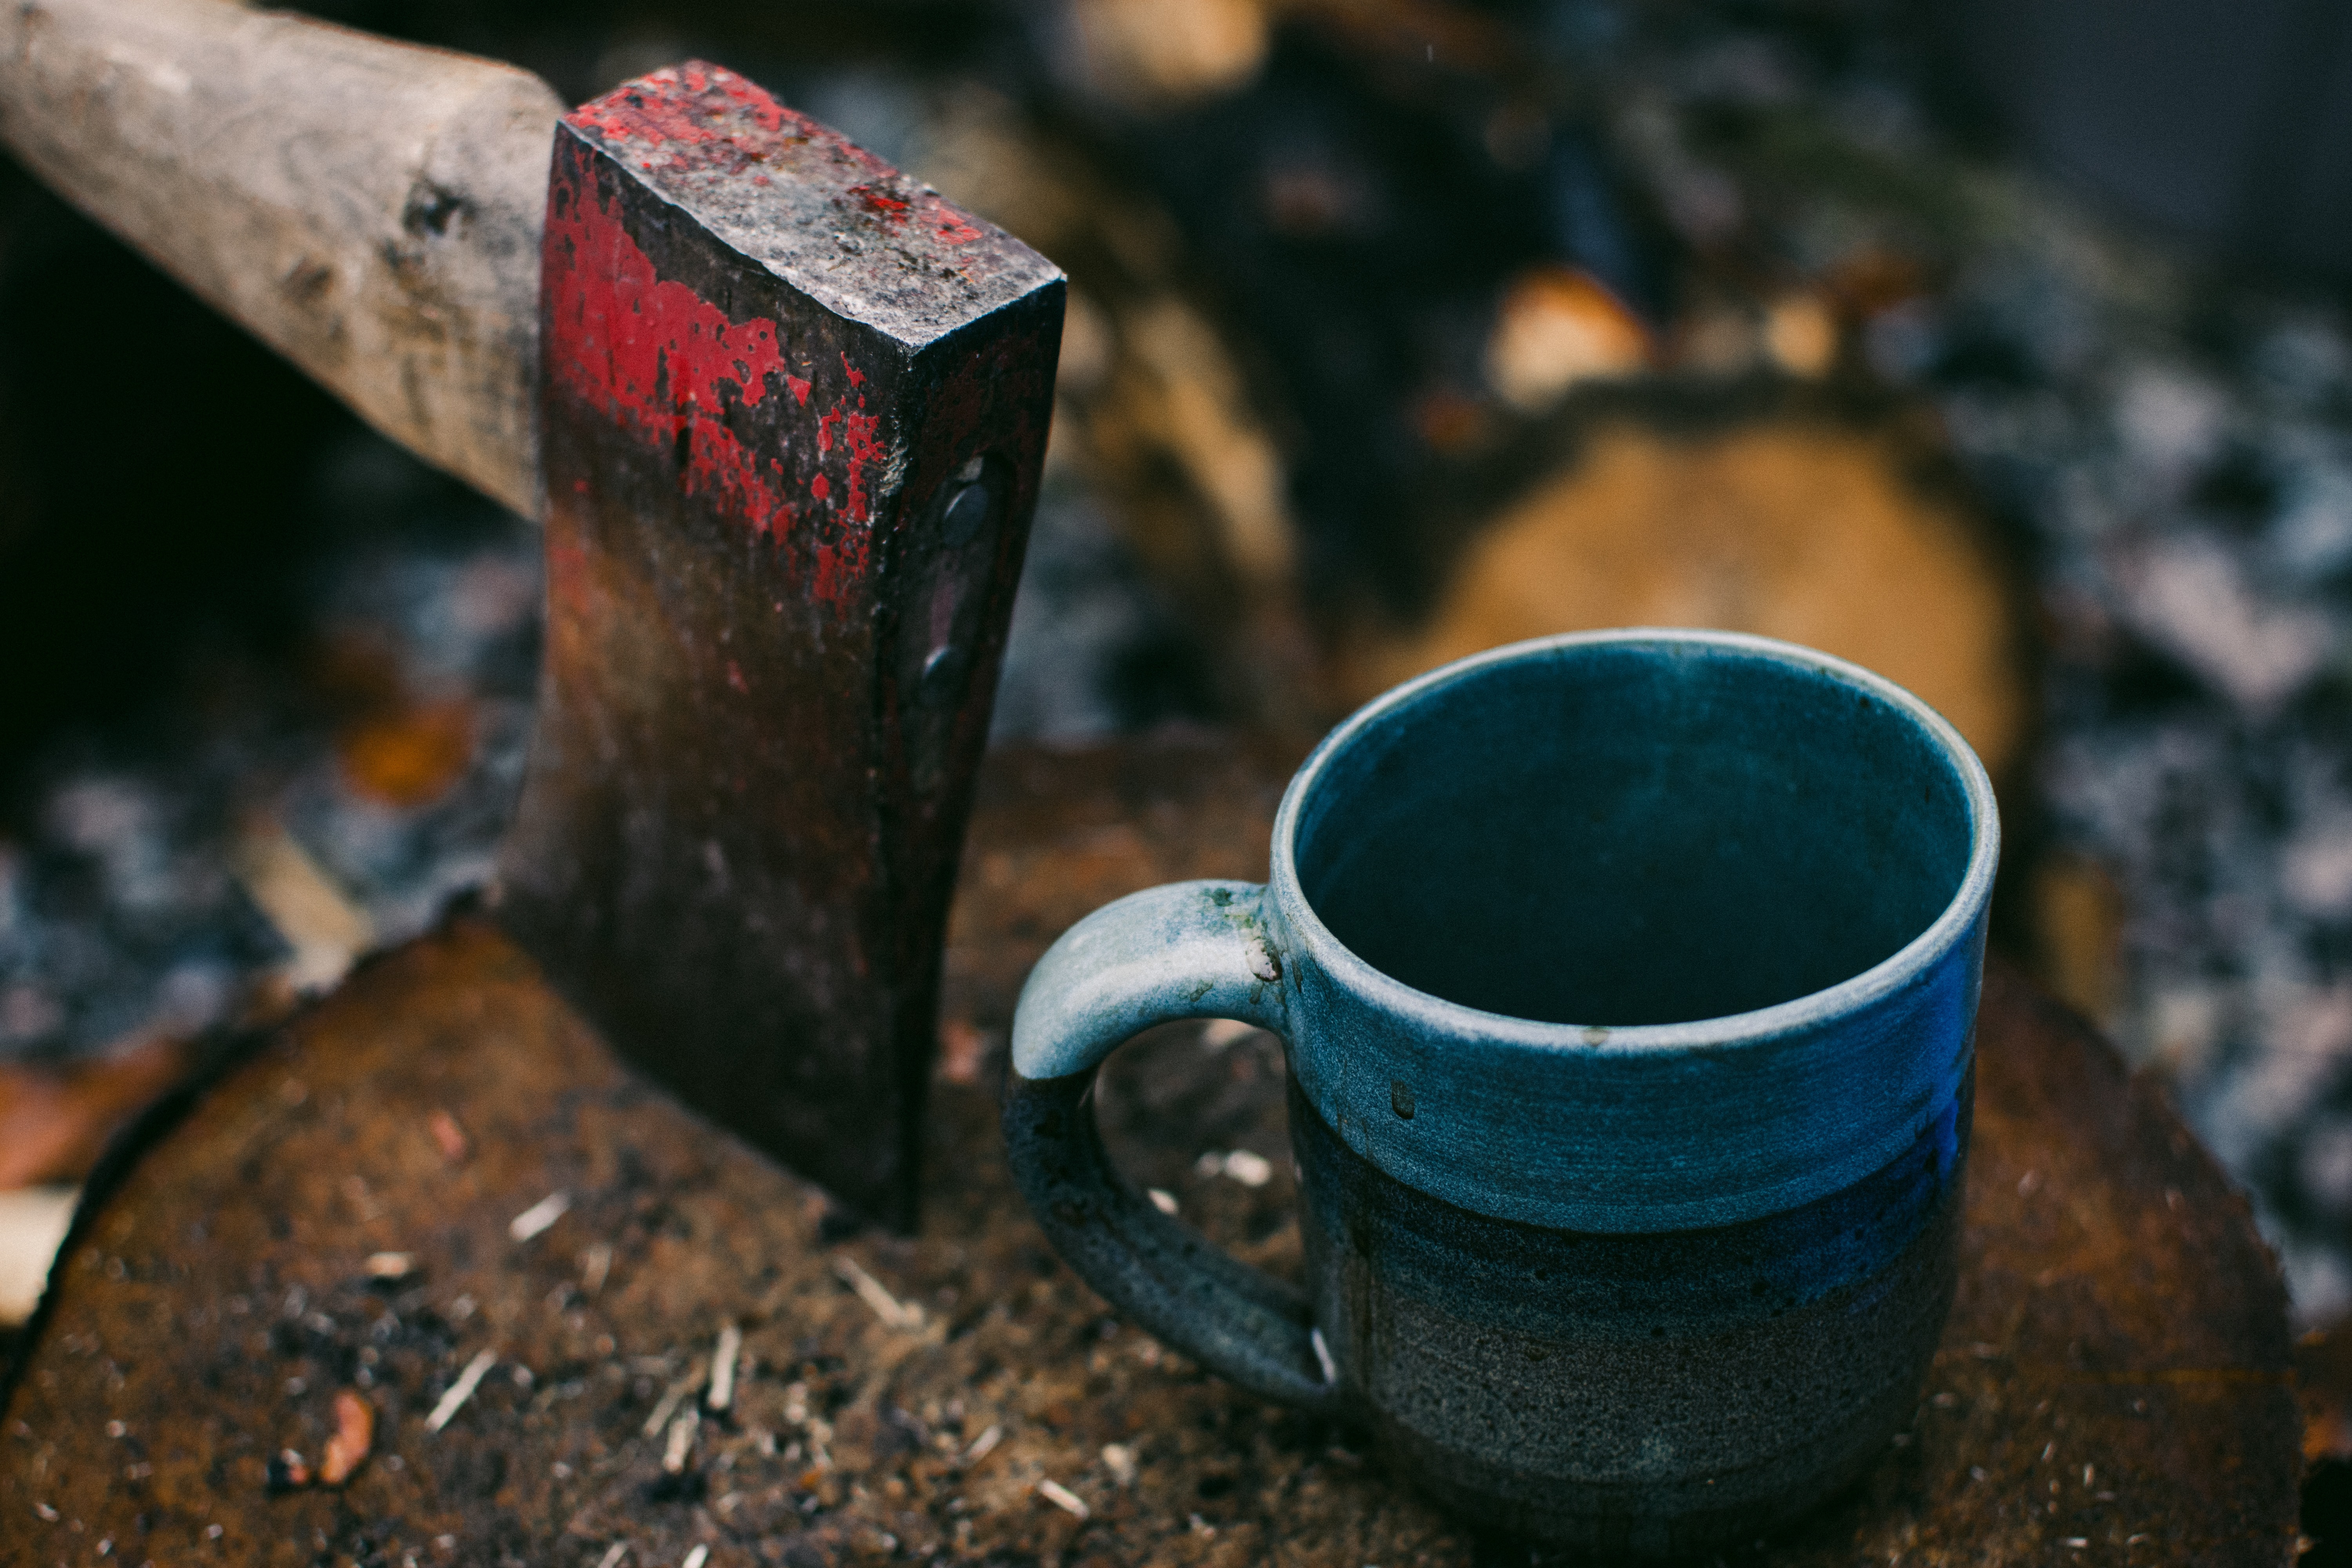 A blue enamel cup next to a rusty axe on a log